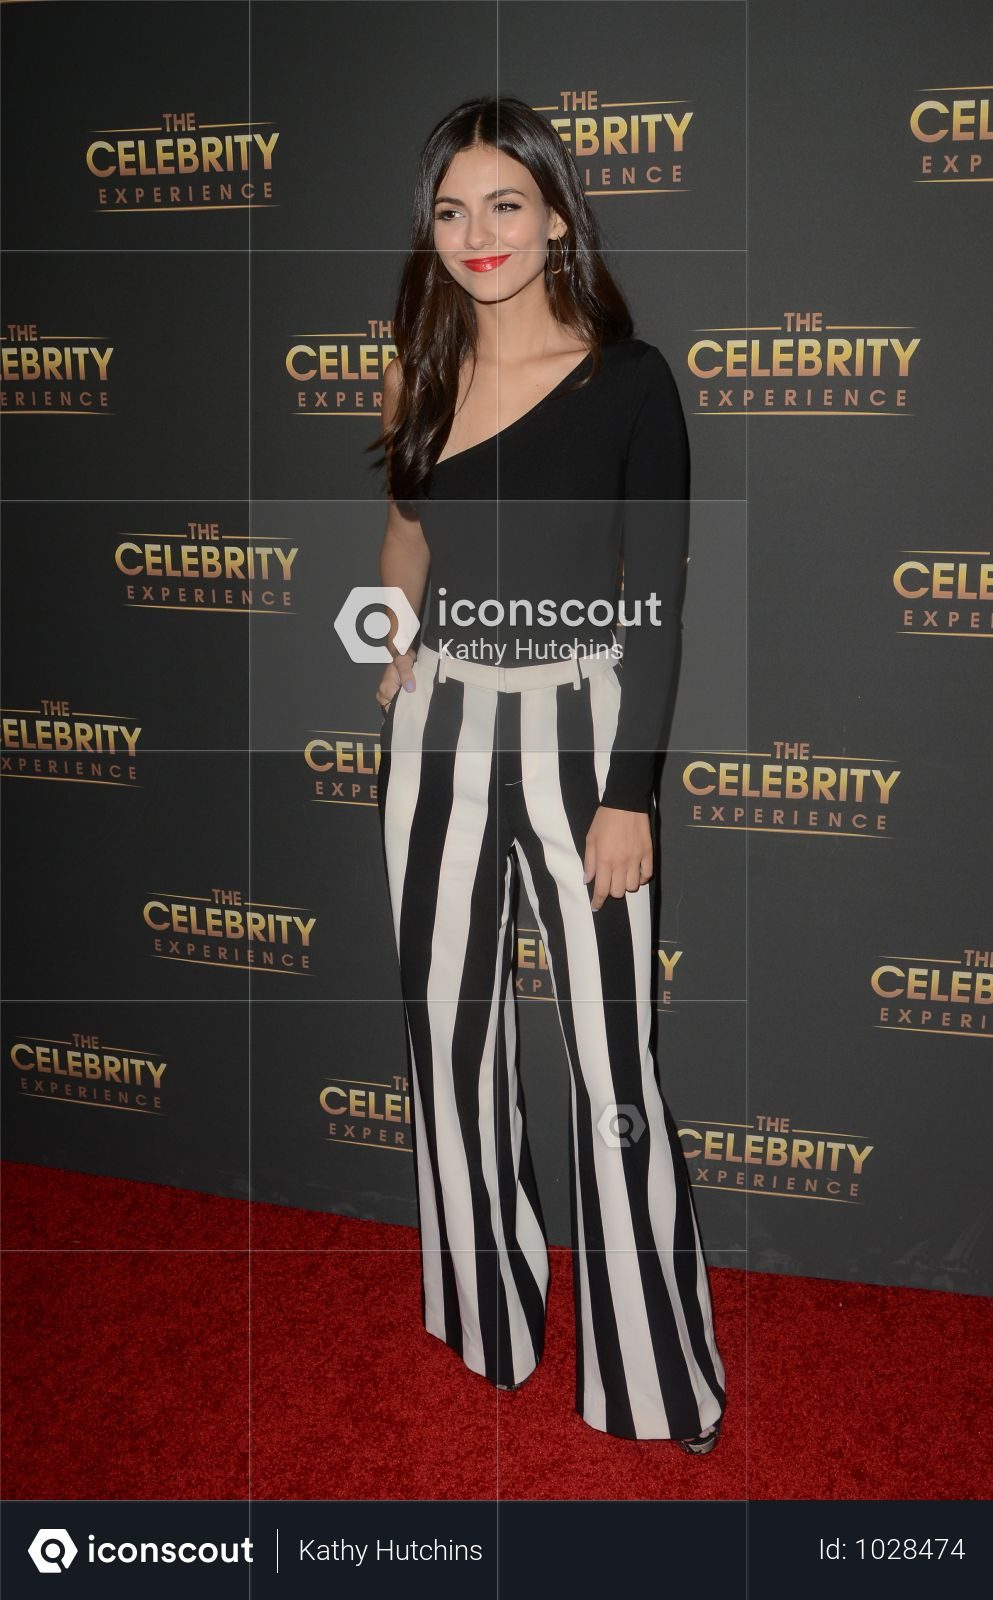 USA - Victoria Justice At The Celebrity Experience - Universal City Photo